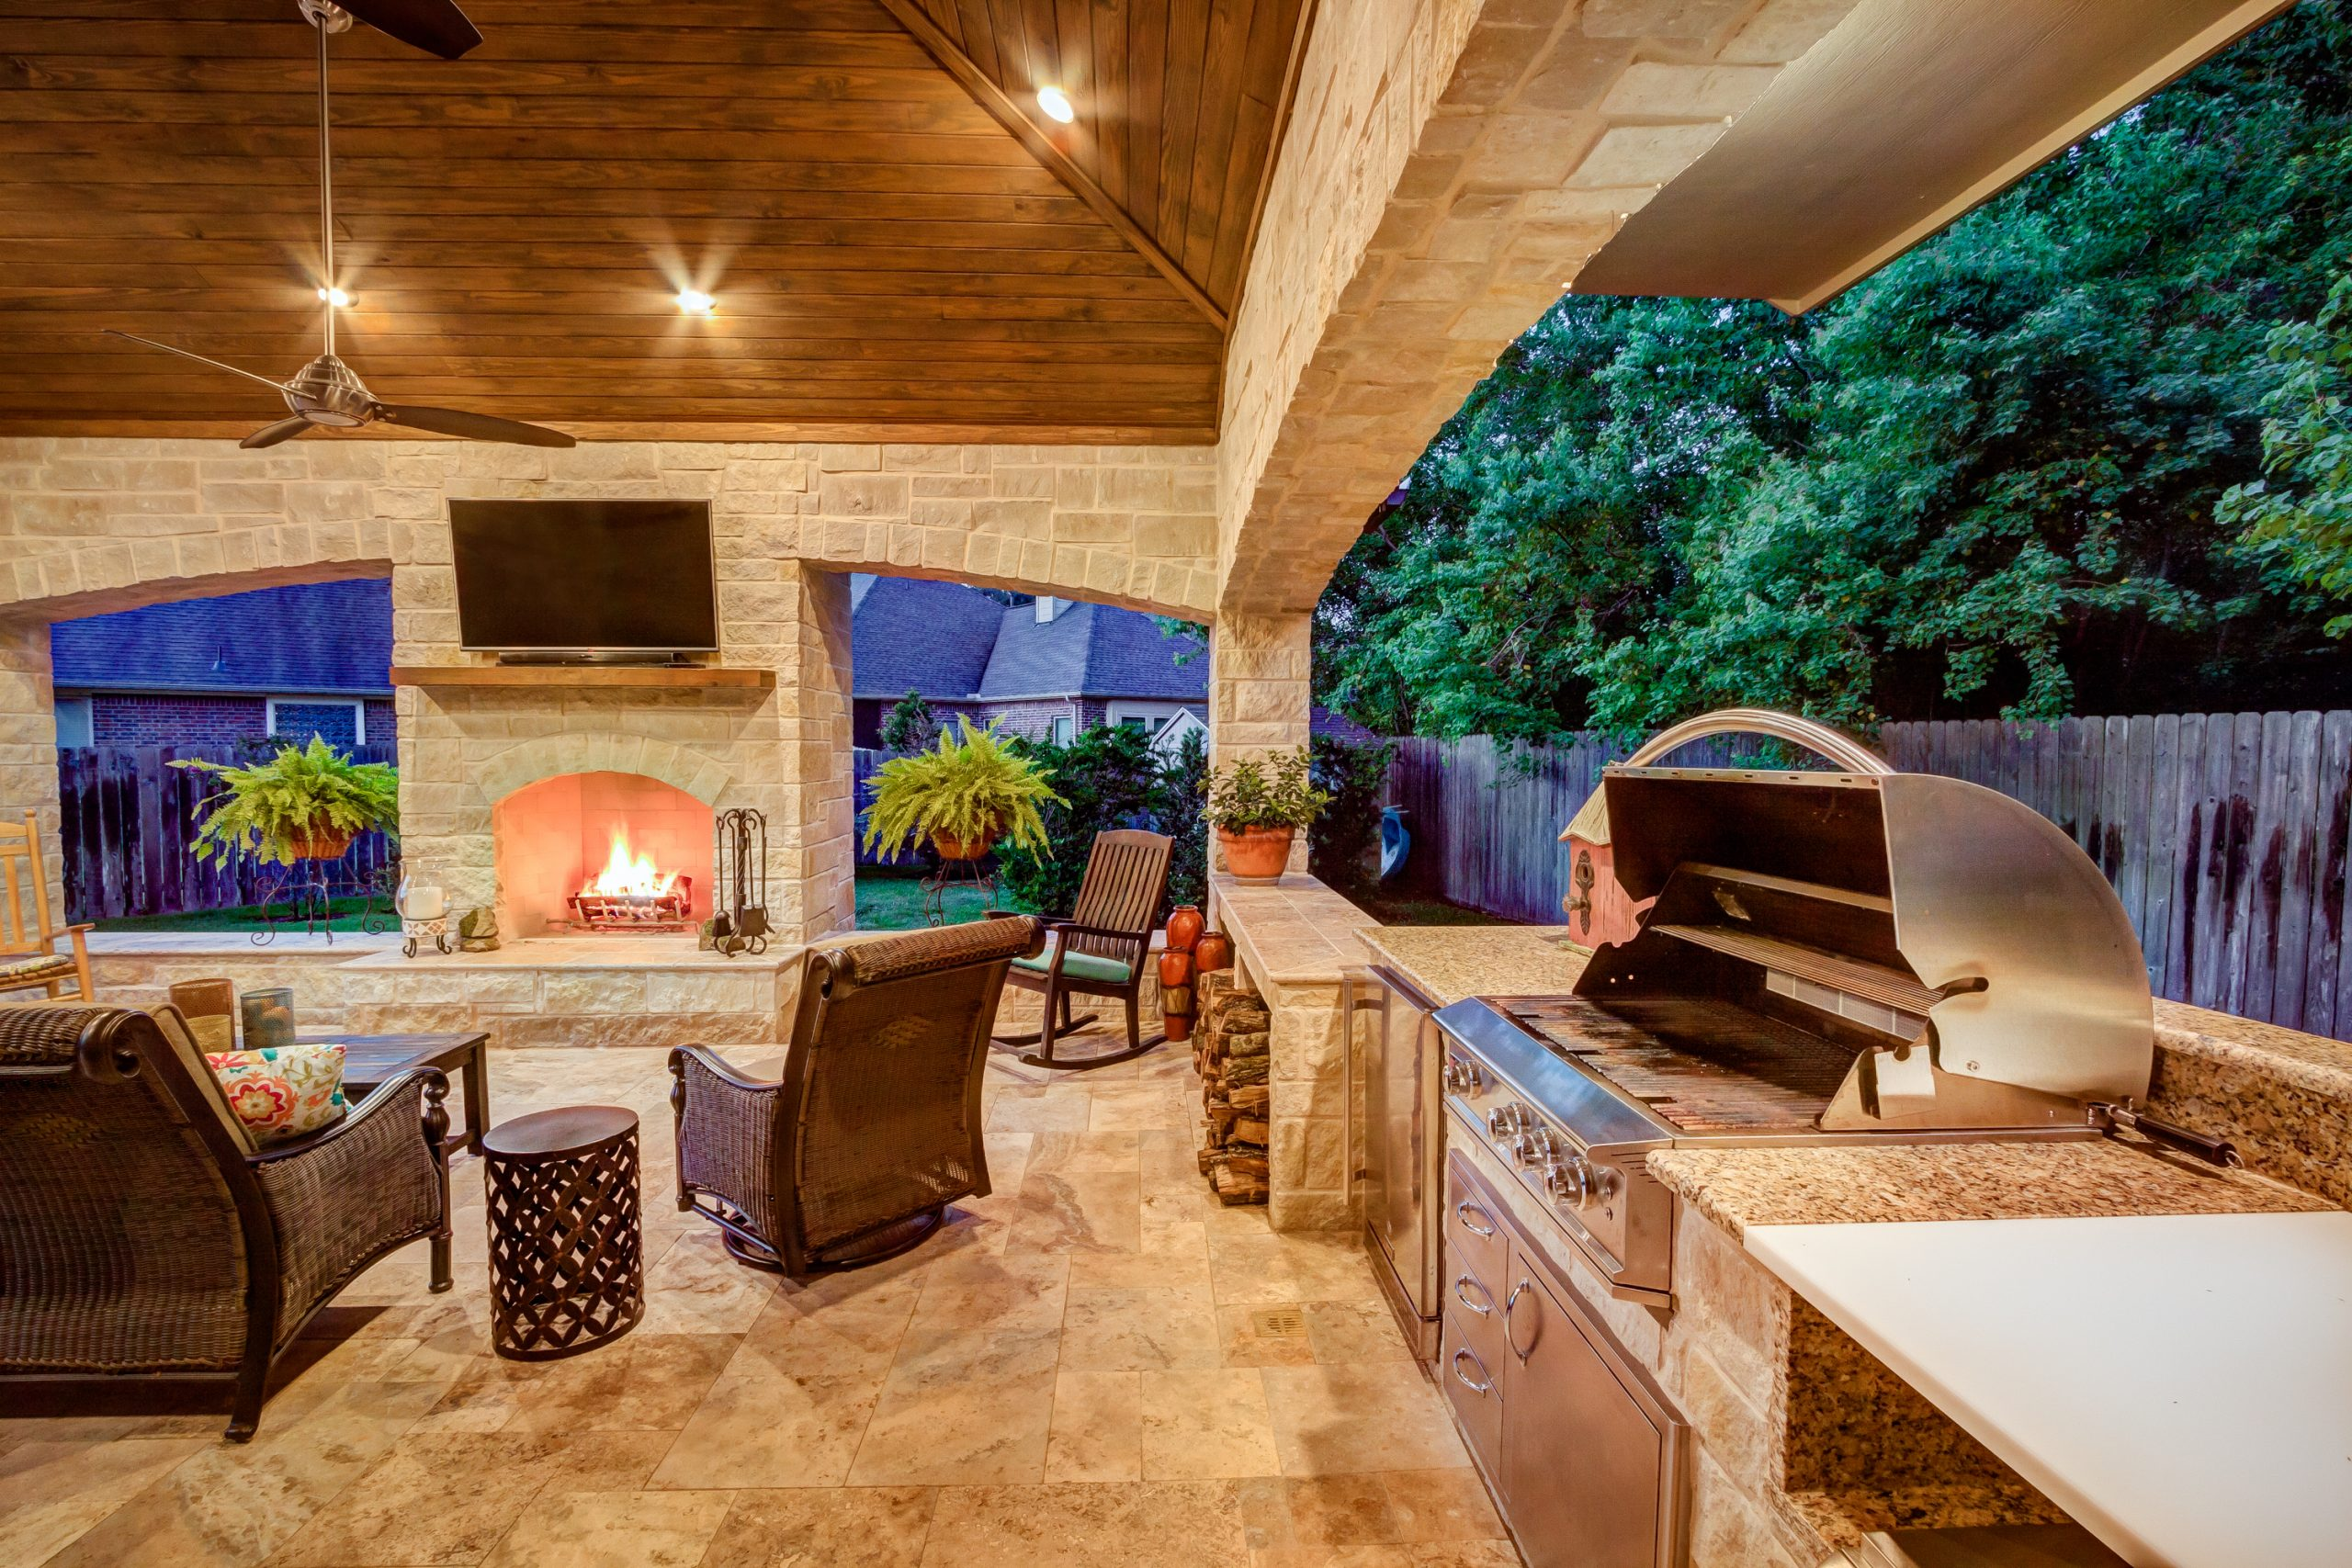 5 Tips to Design the Rustic Outdoor Kitchen of Your Dreams, Outdoor Kitchen Design, Creekstone Outdoor Living